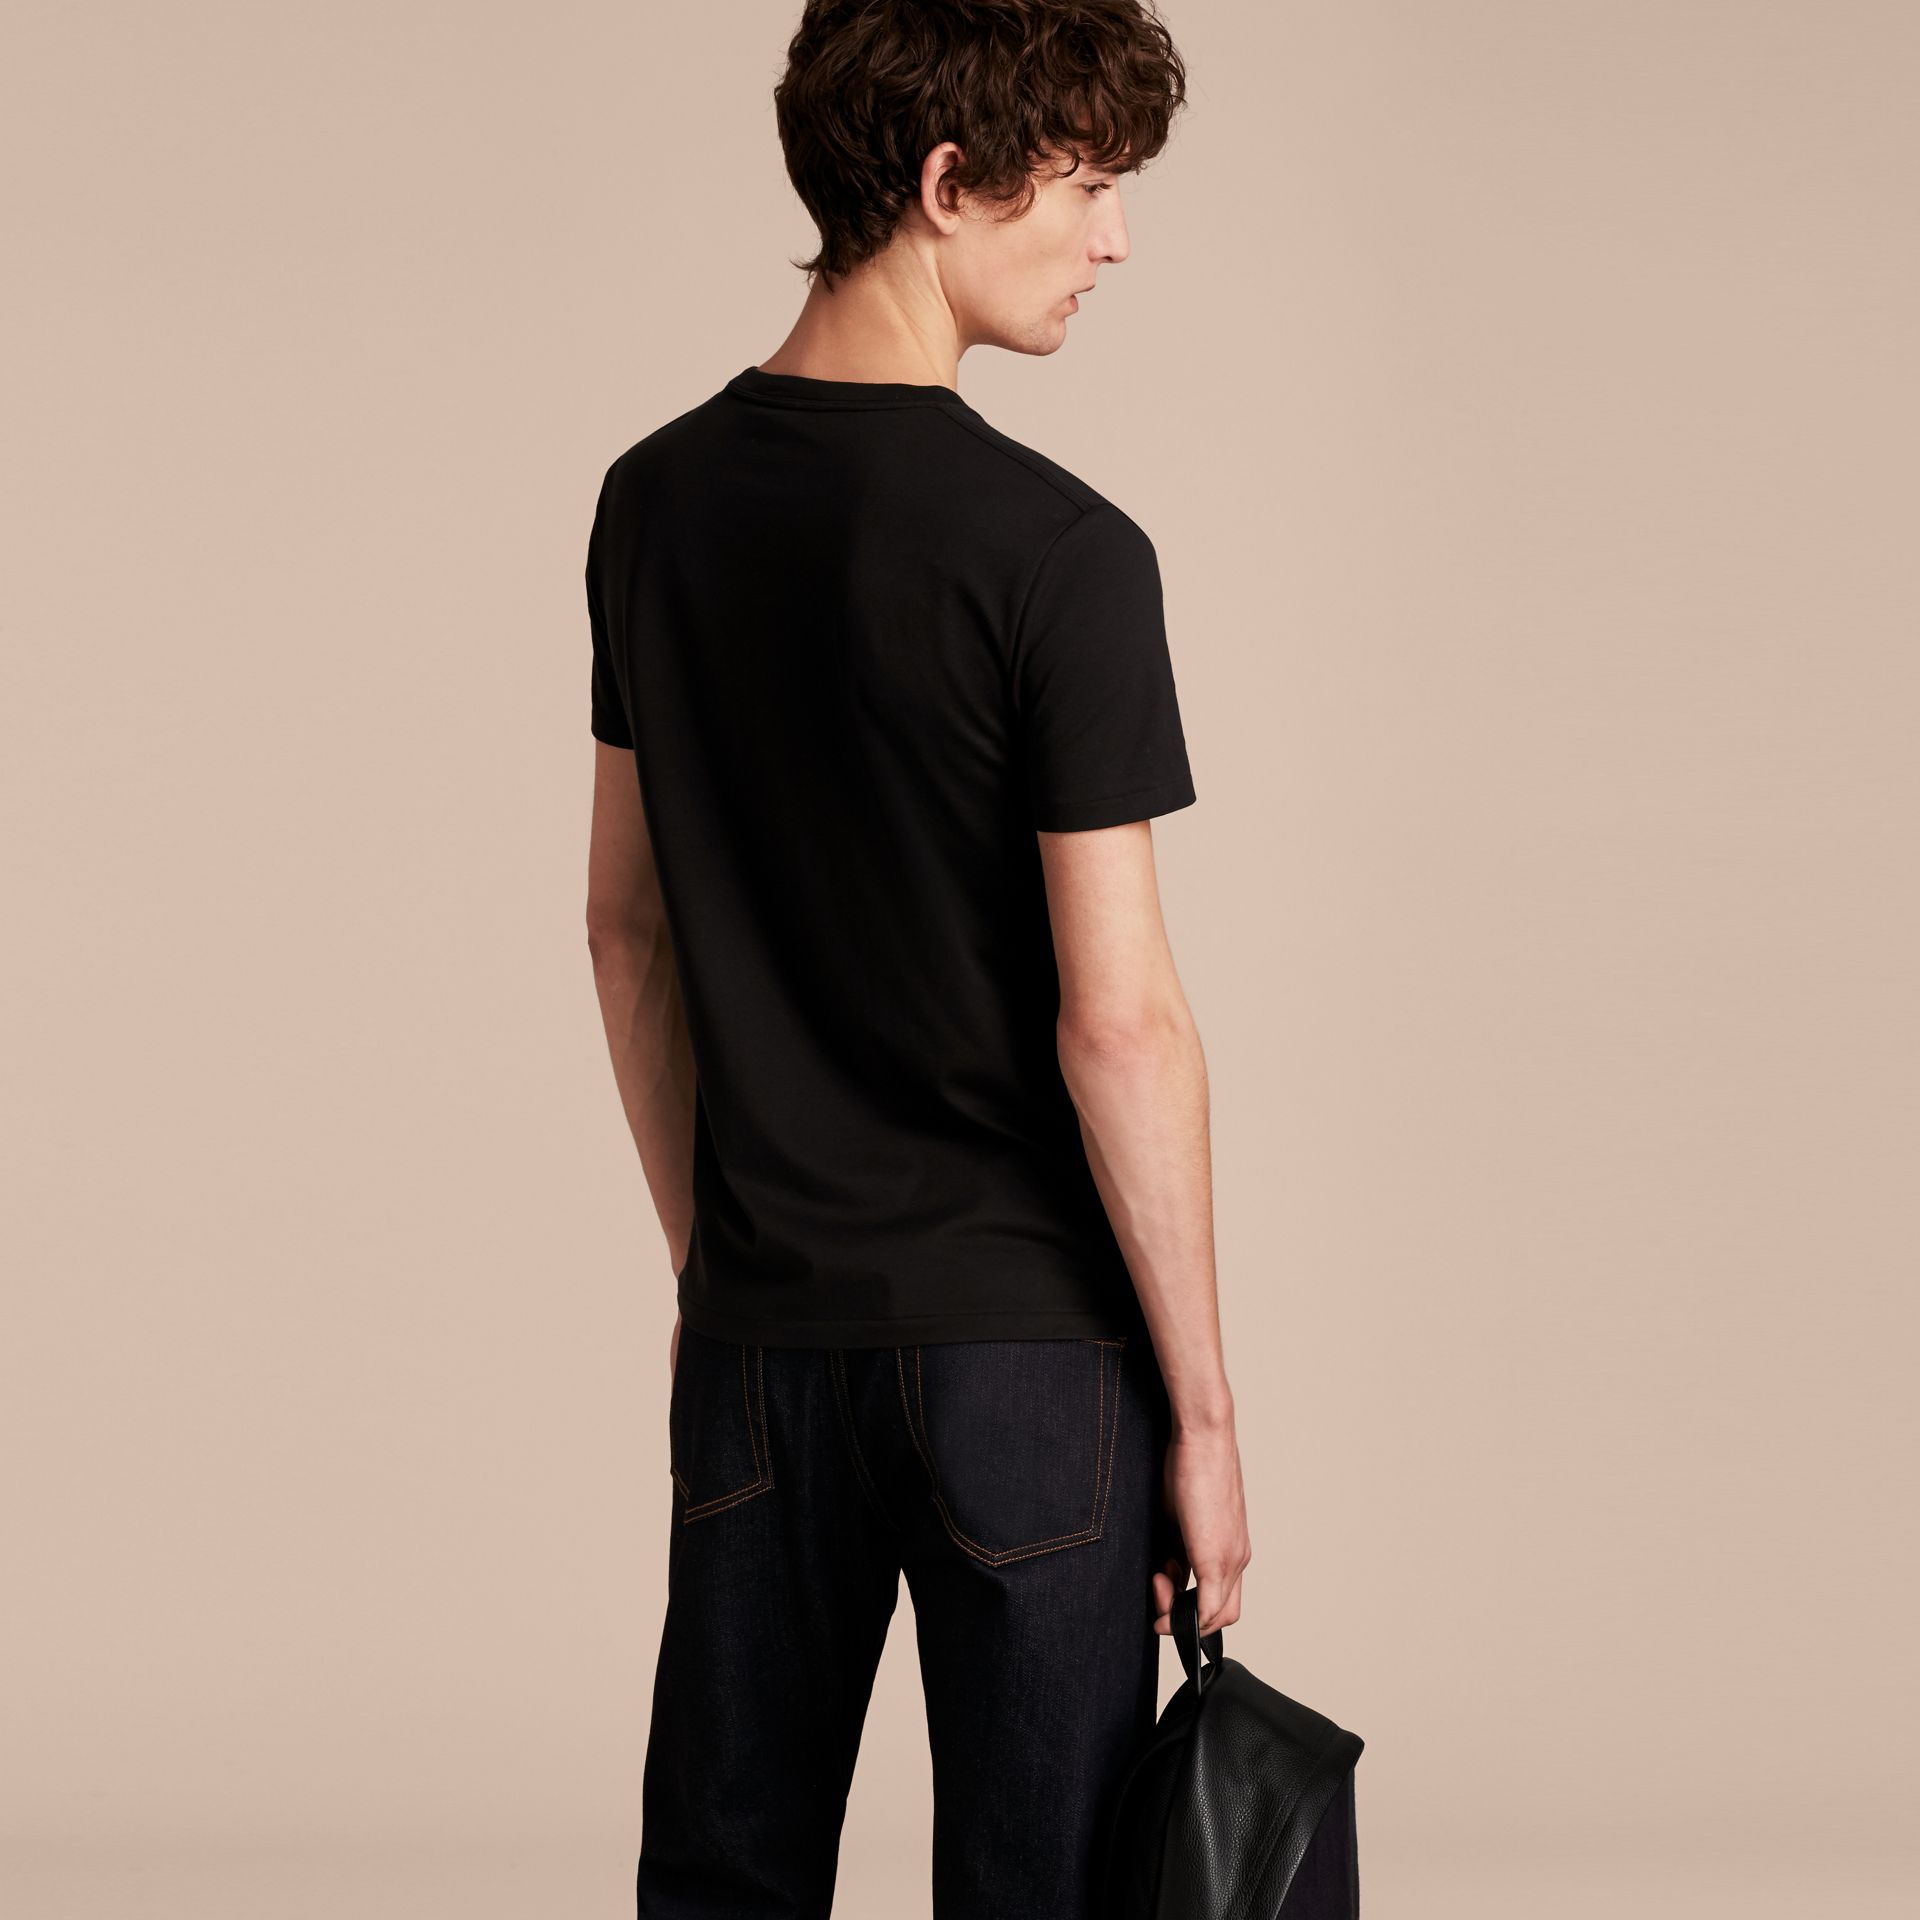 Cotton V-neck T-shirt in Black - Men | Burberry - gallery image 3